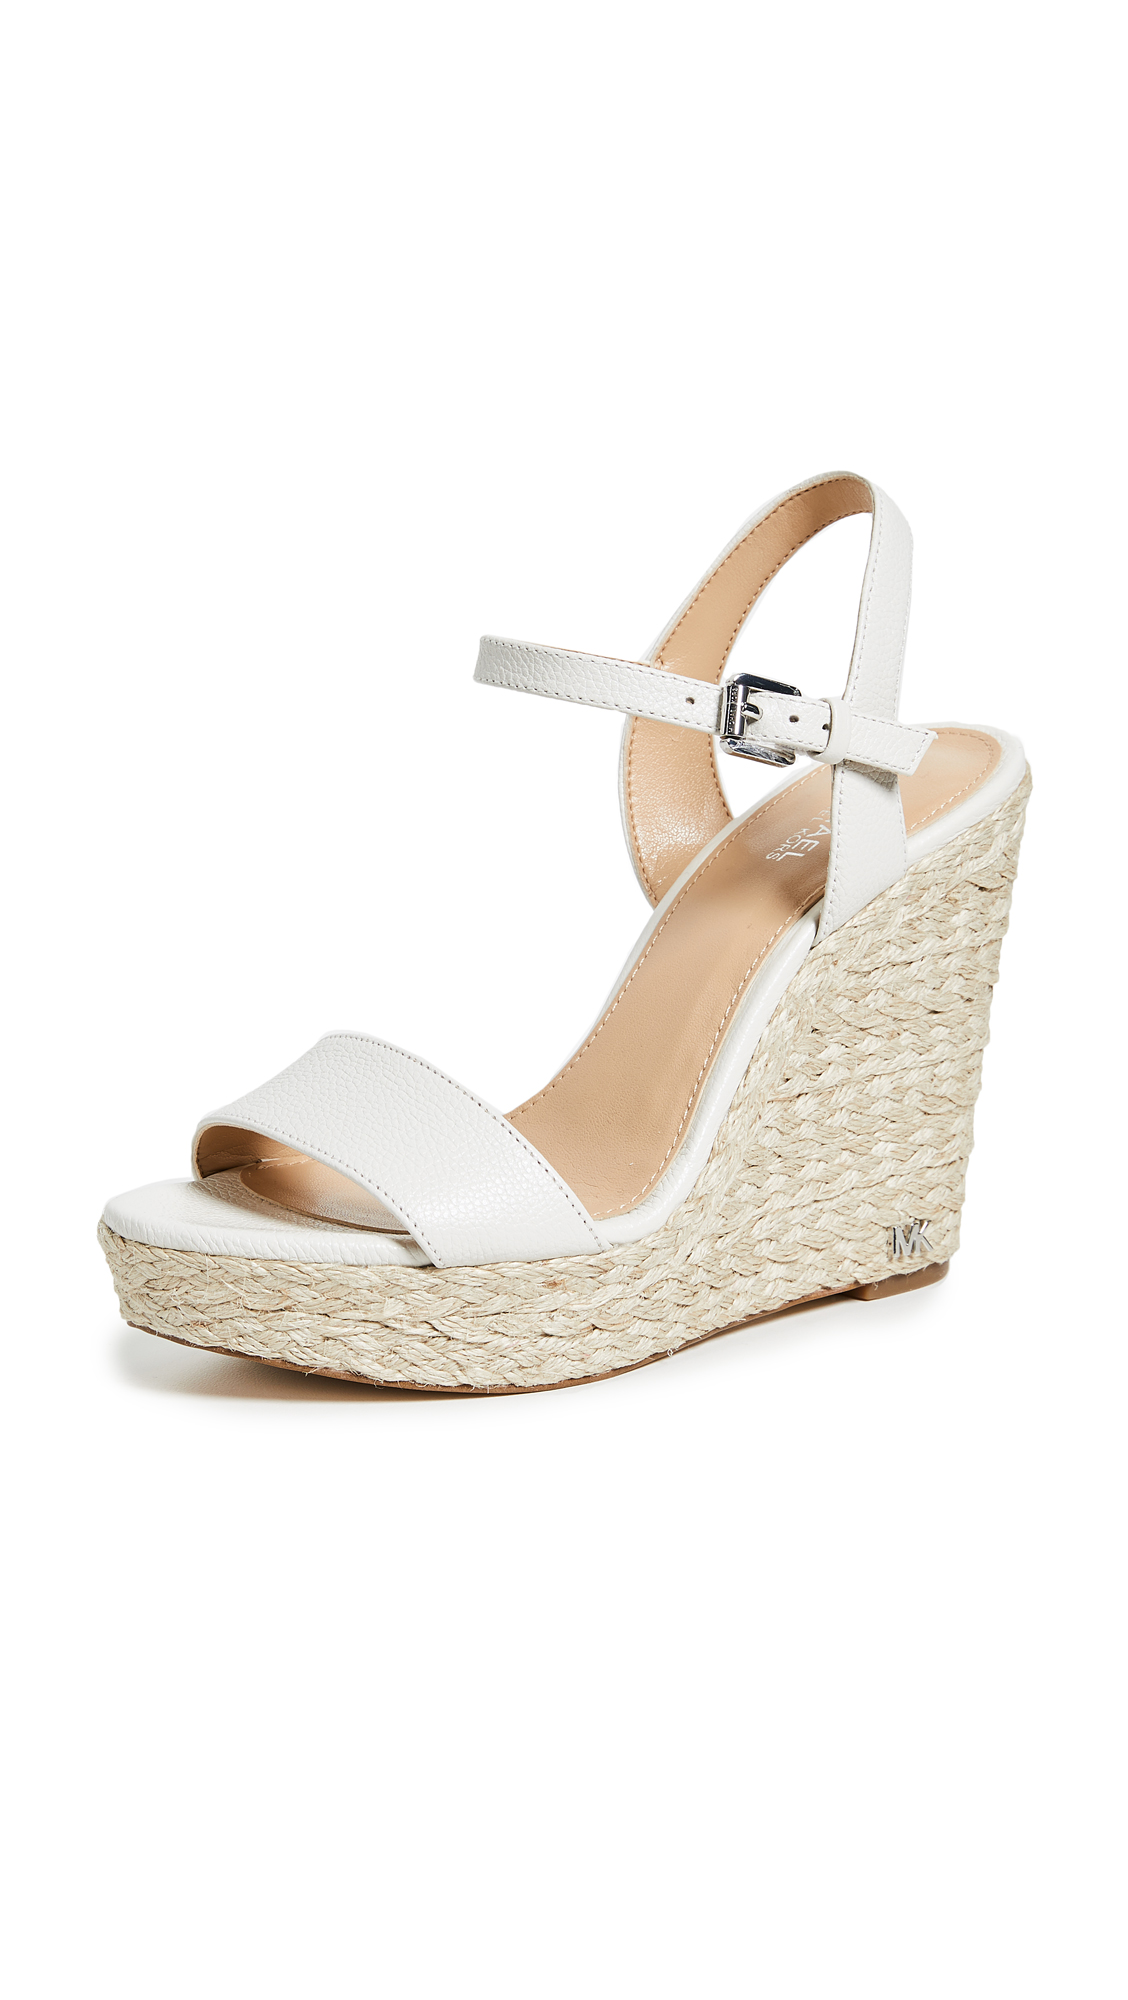 MICHAEL Michael Kors Jill Espadrille Wedges - Optic White